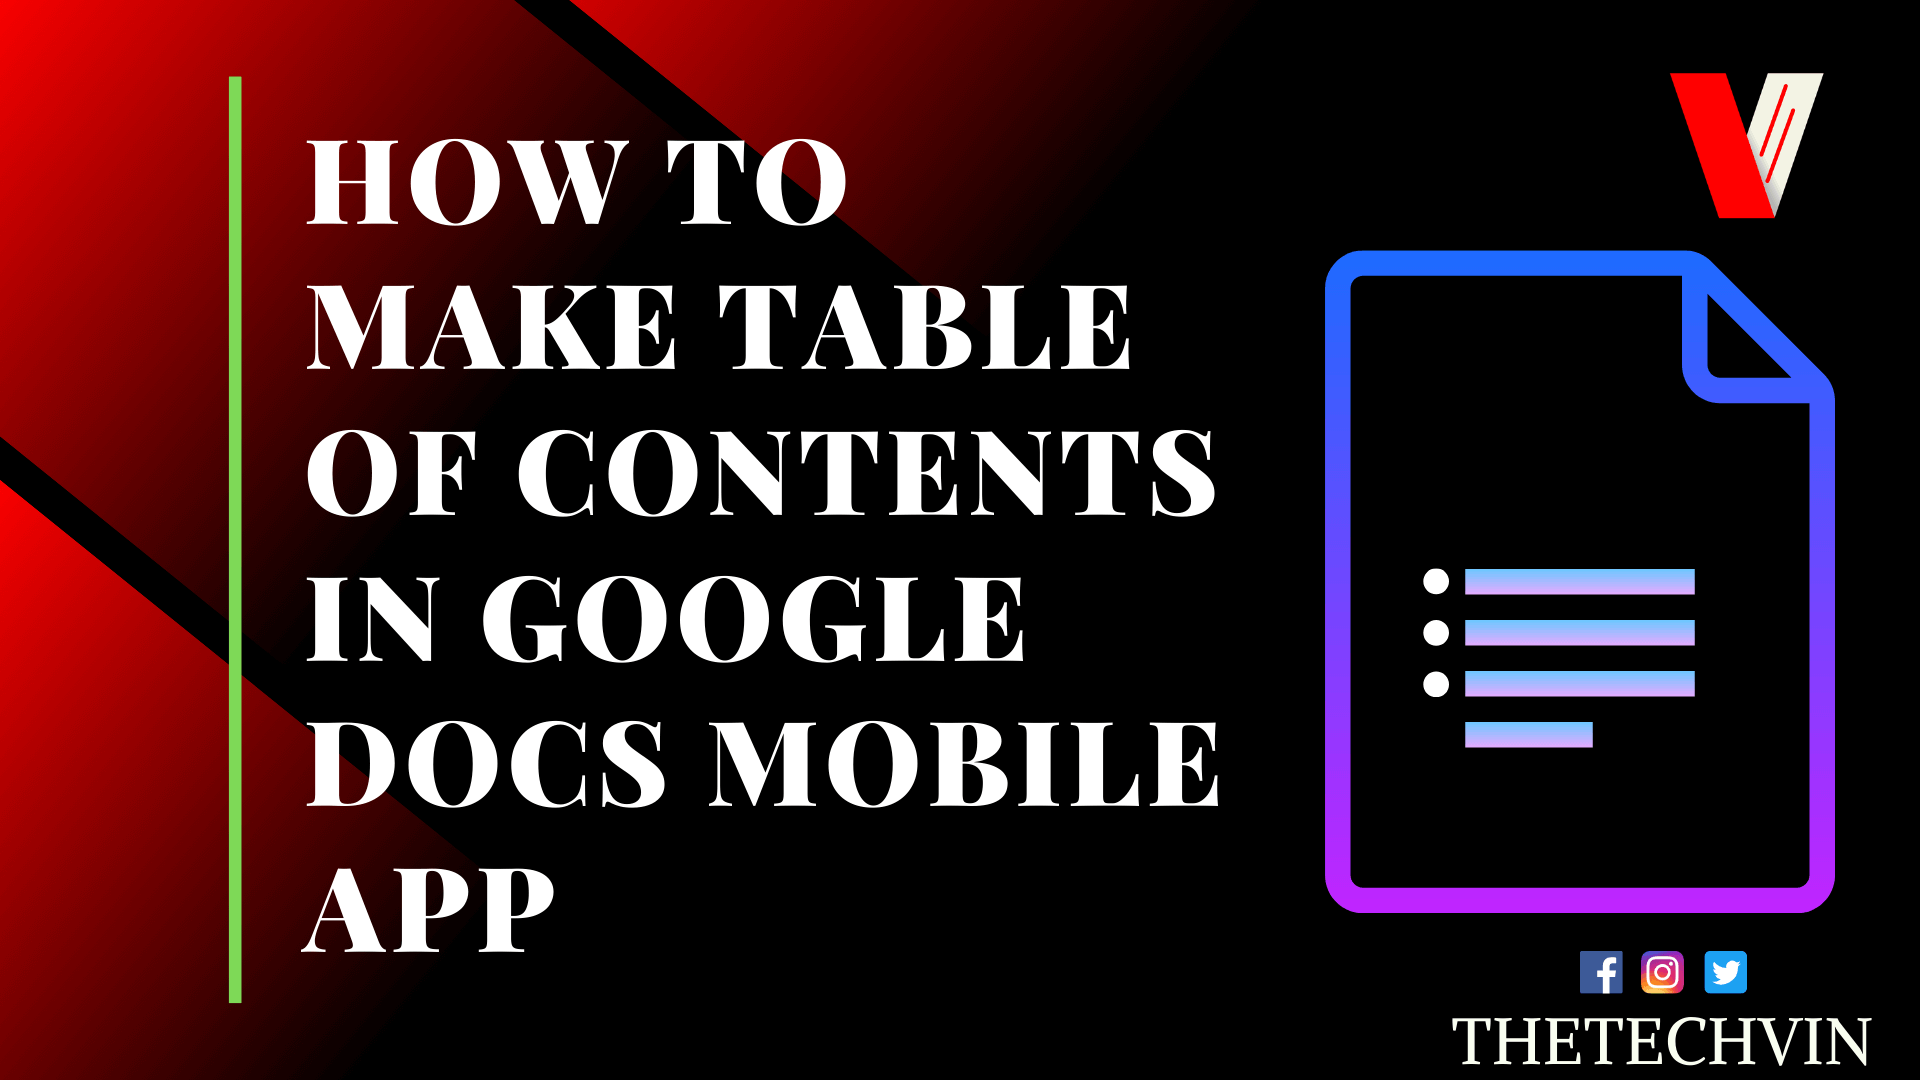 How to Make a Table of Contents in Google Docs app on smartphone